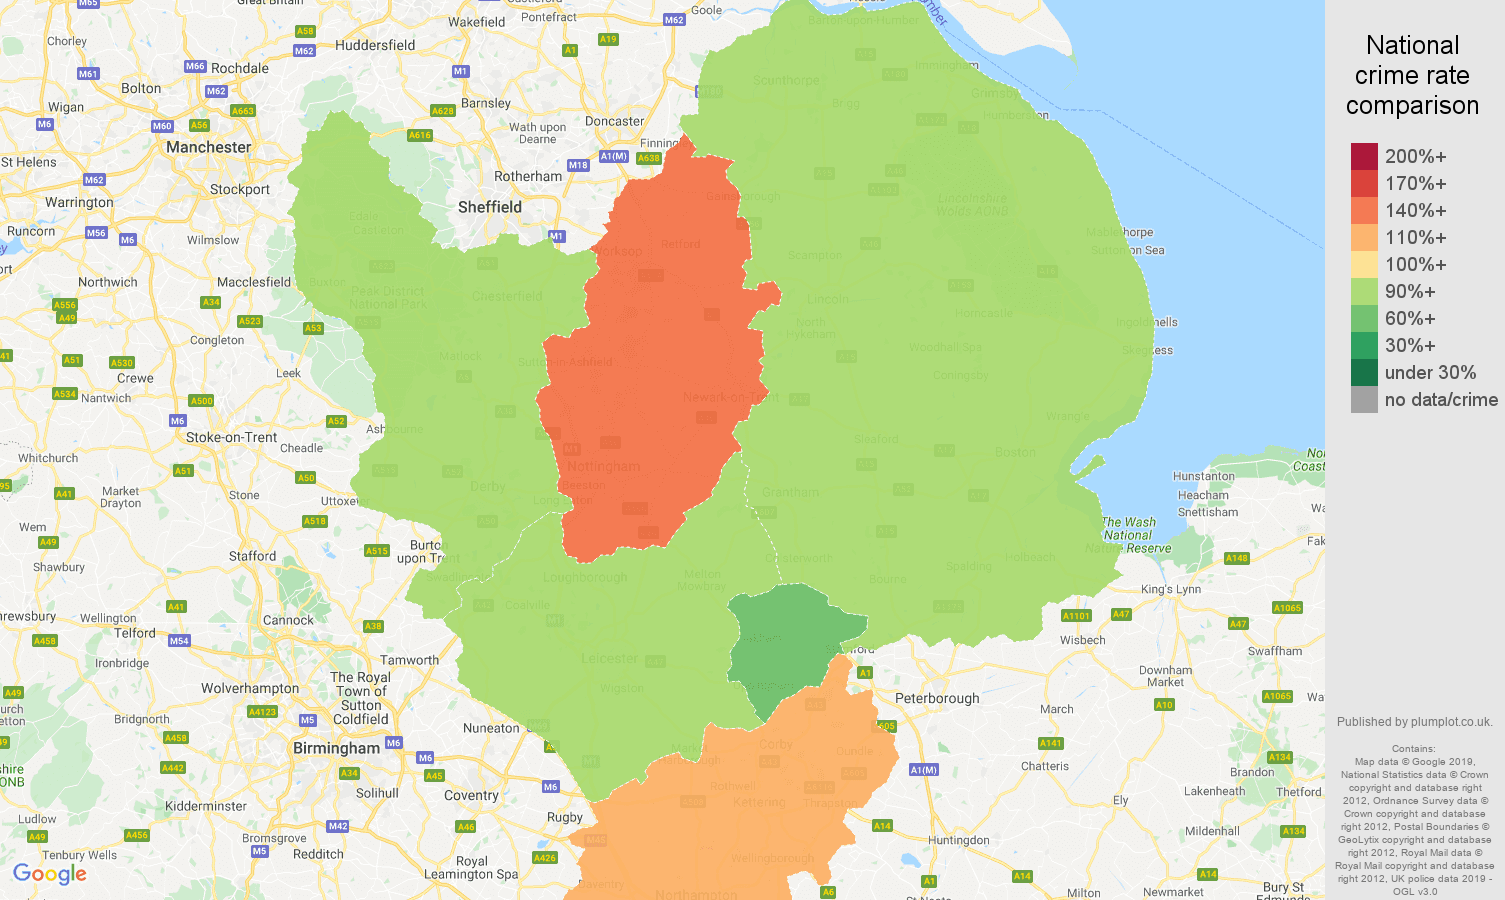 East Midlands possession of weapons crime rate comparison map